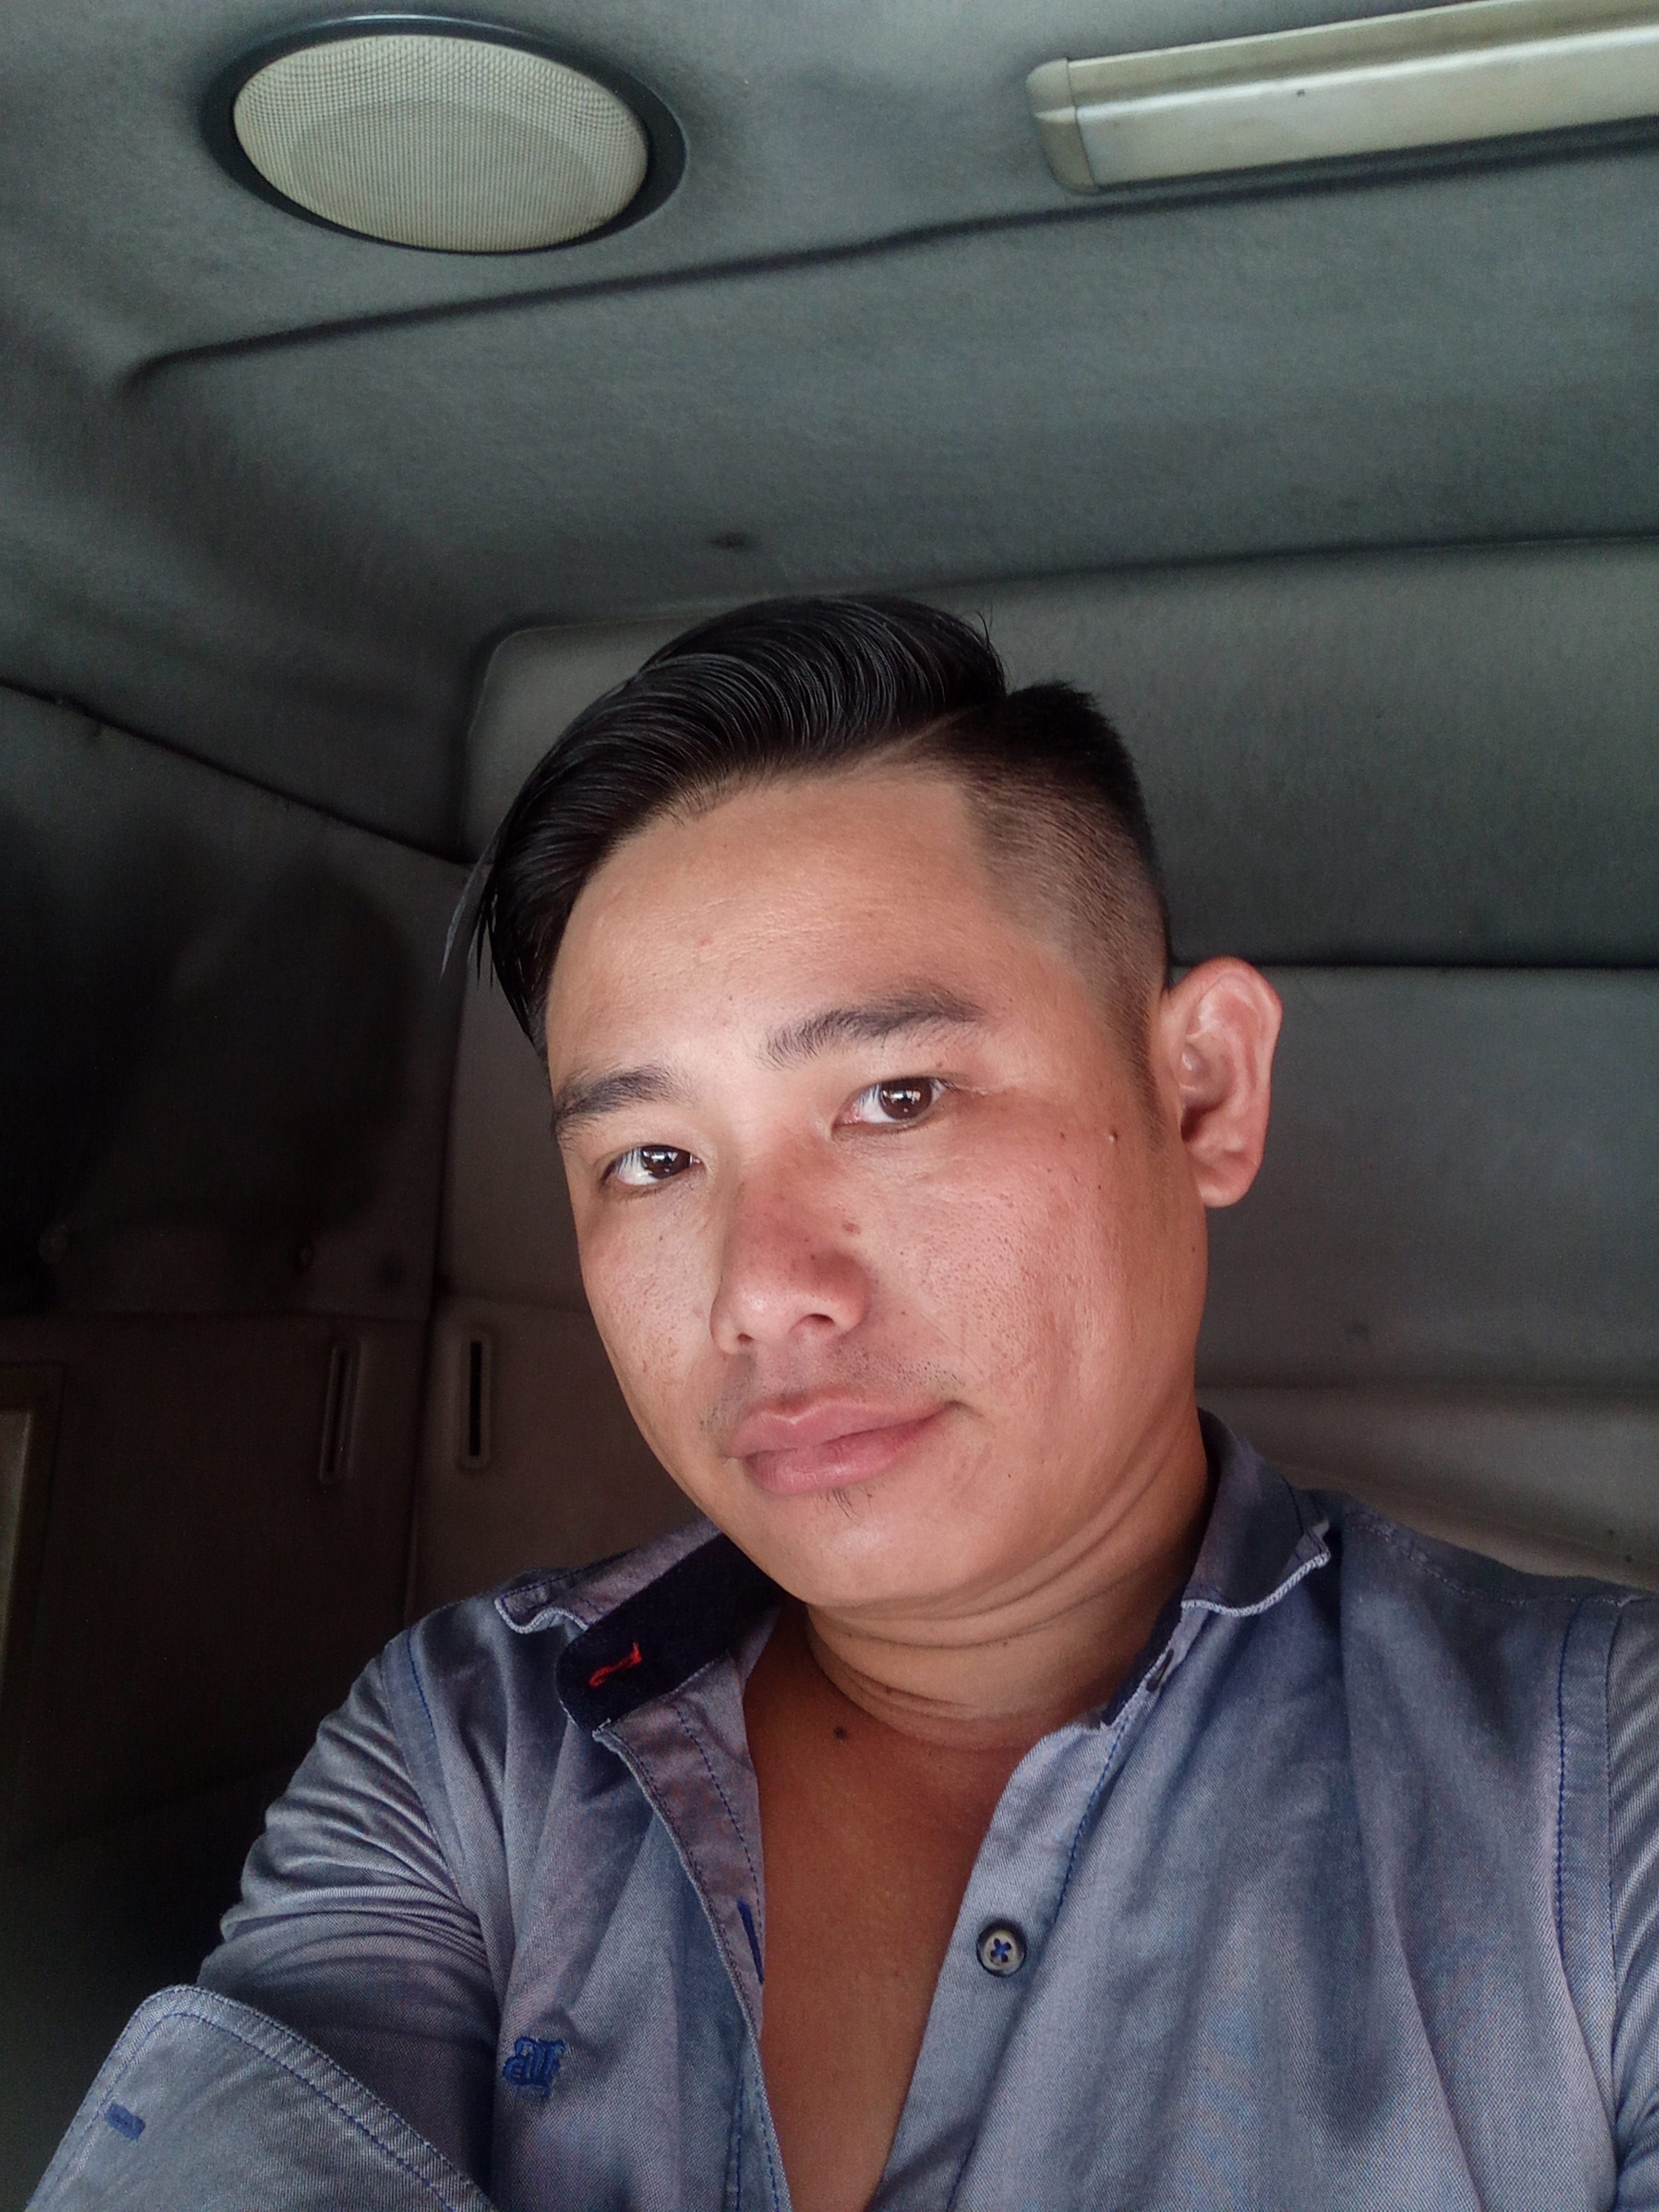 Nguyễn Nghĩa Profile Picture